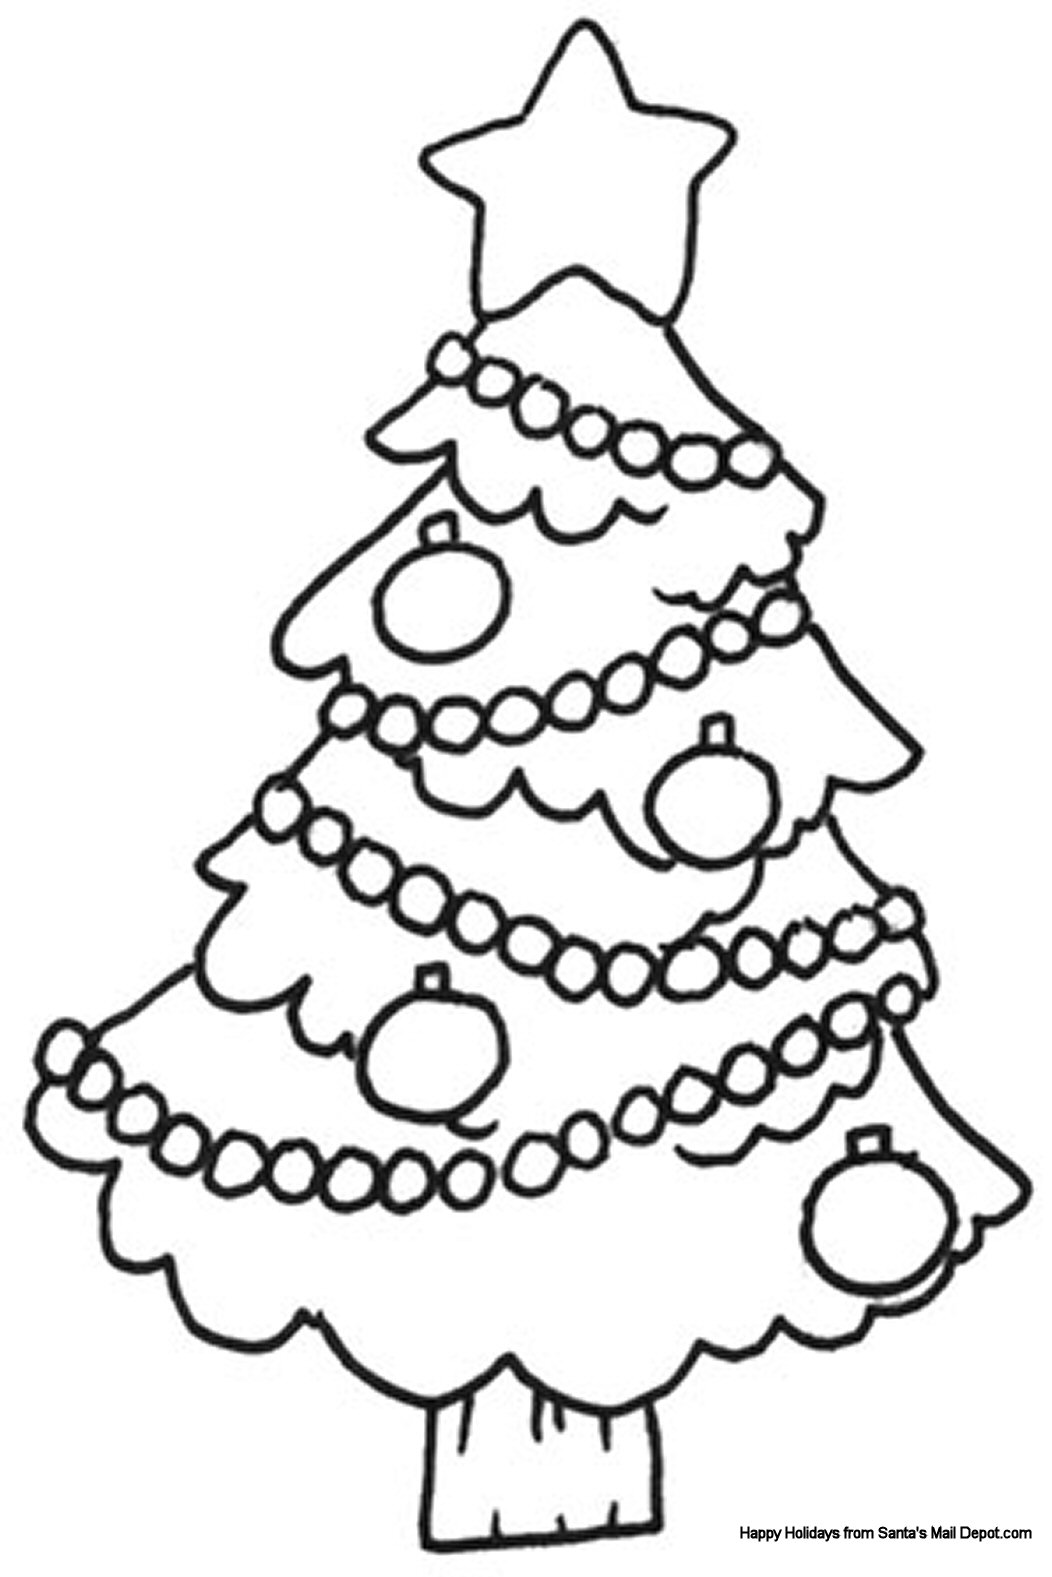 free coloring pages for 4 year olds nice simple hello kitty coloring page hello kitty for olds coloring pages free year 4